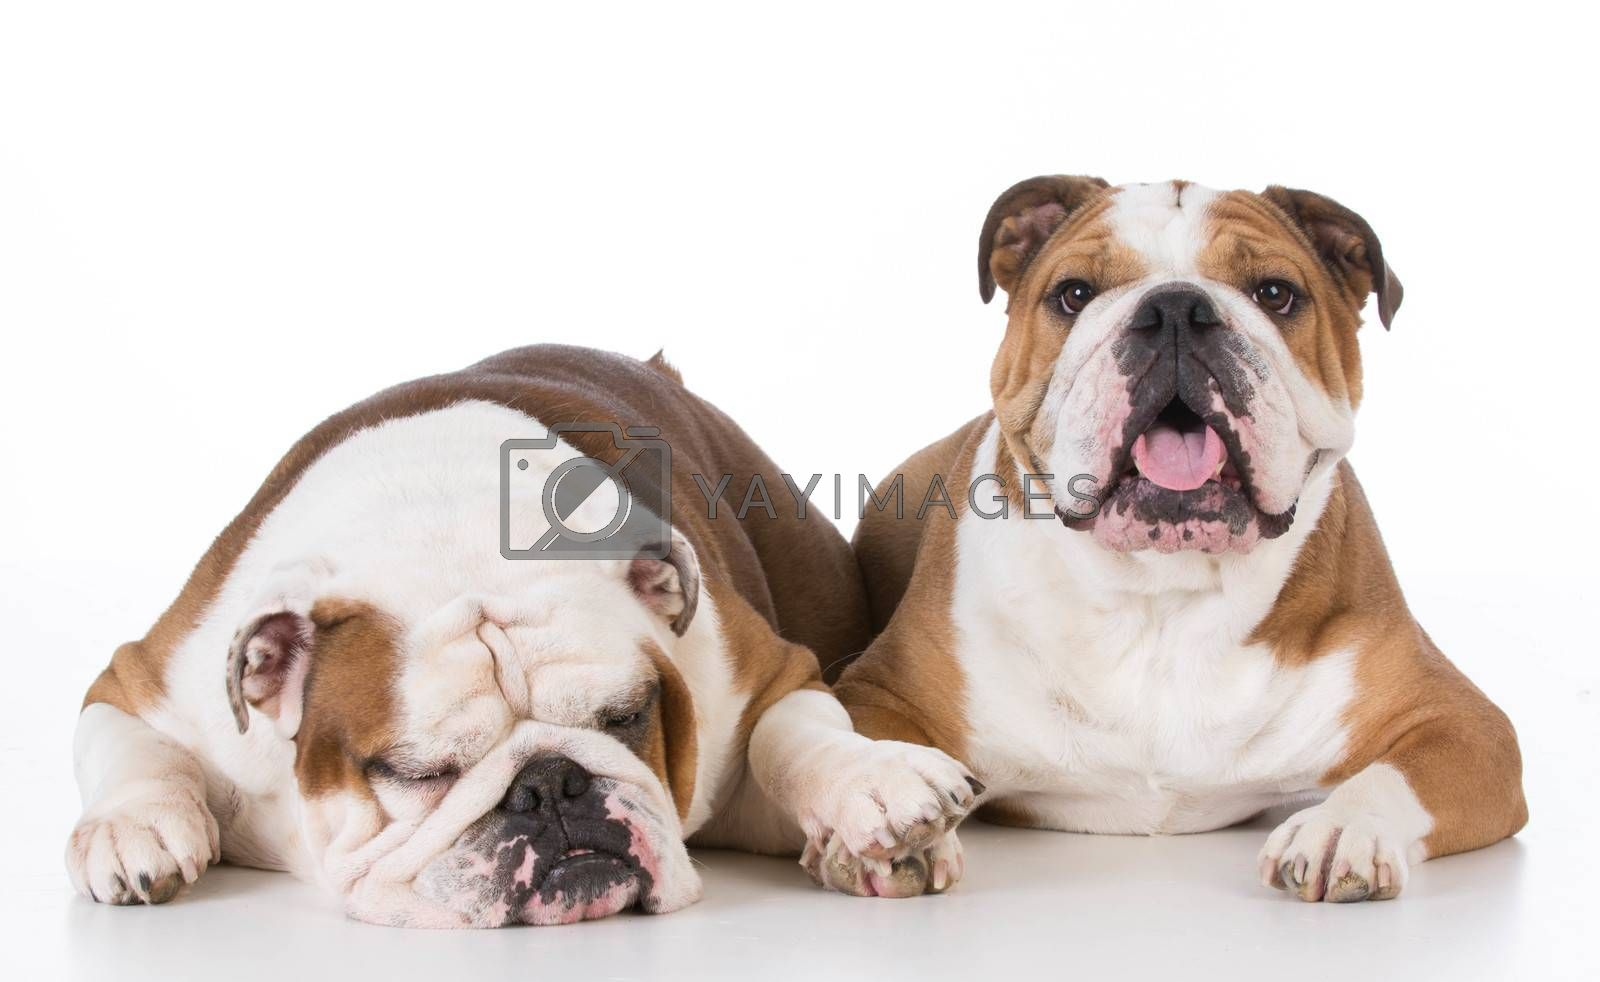 one dog comforting another on white background